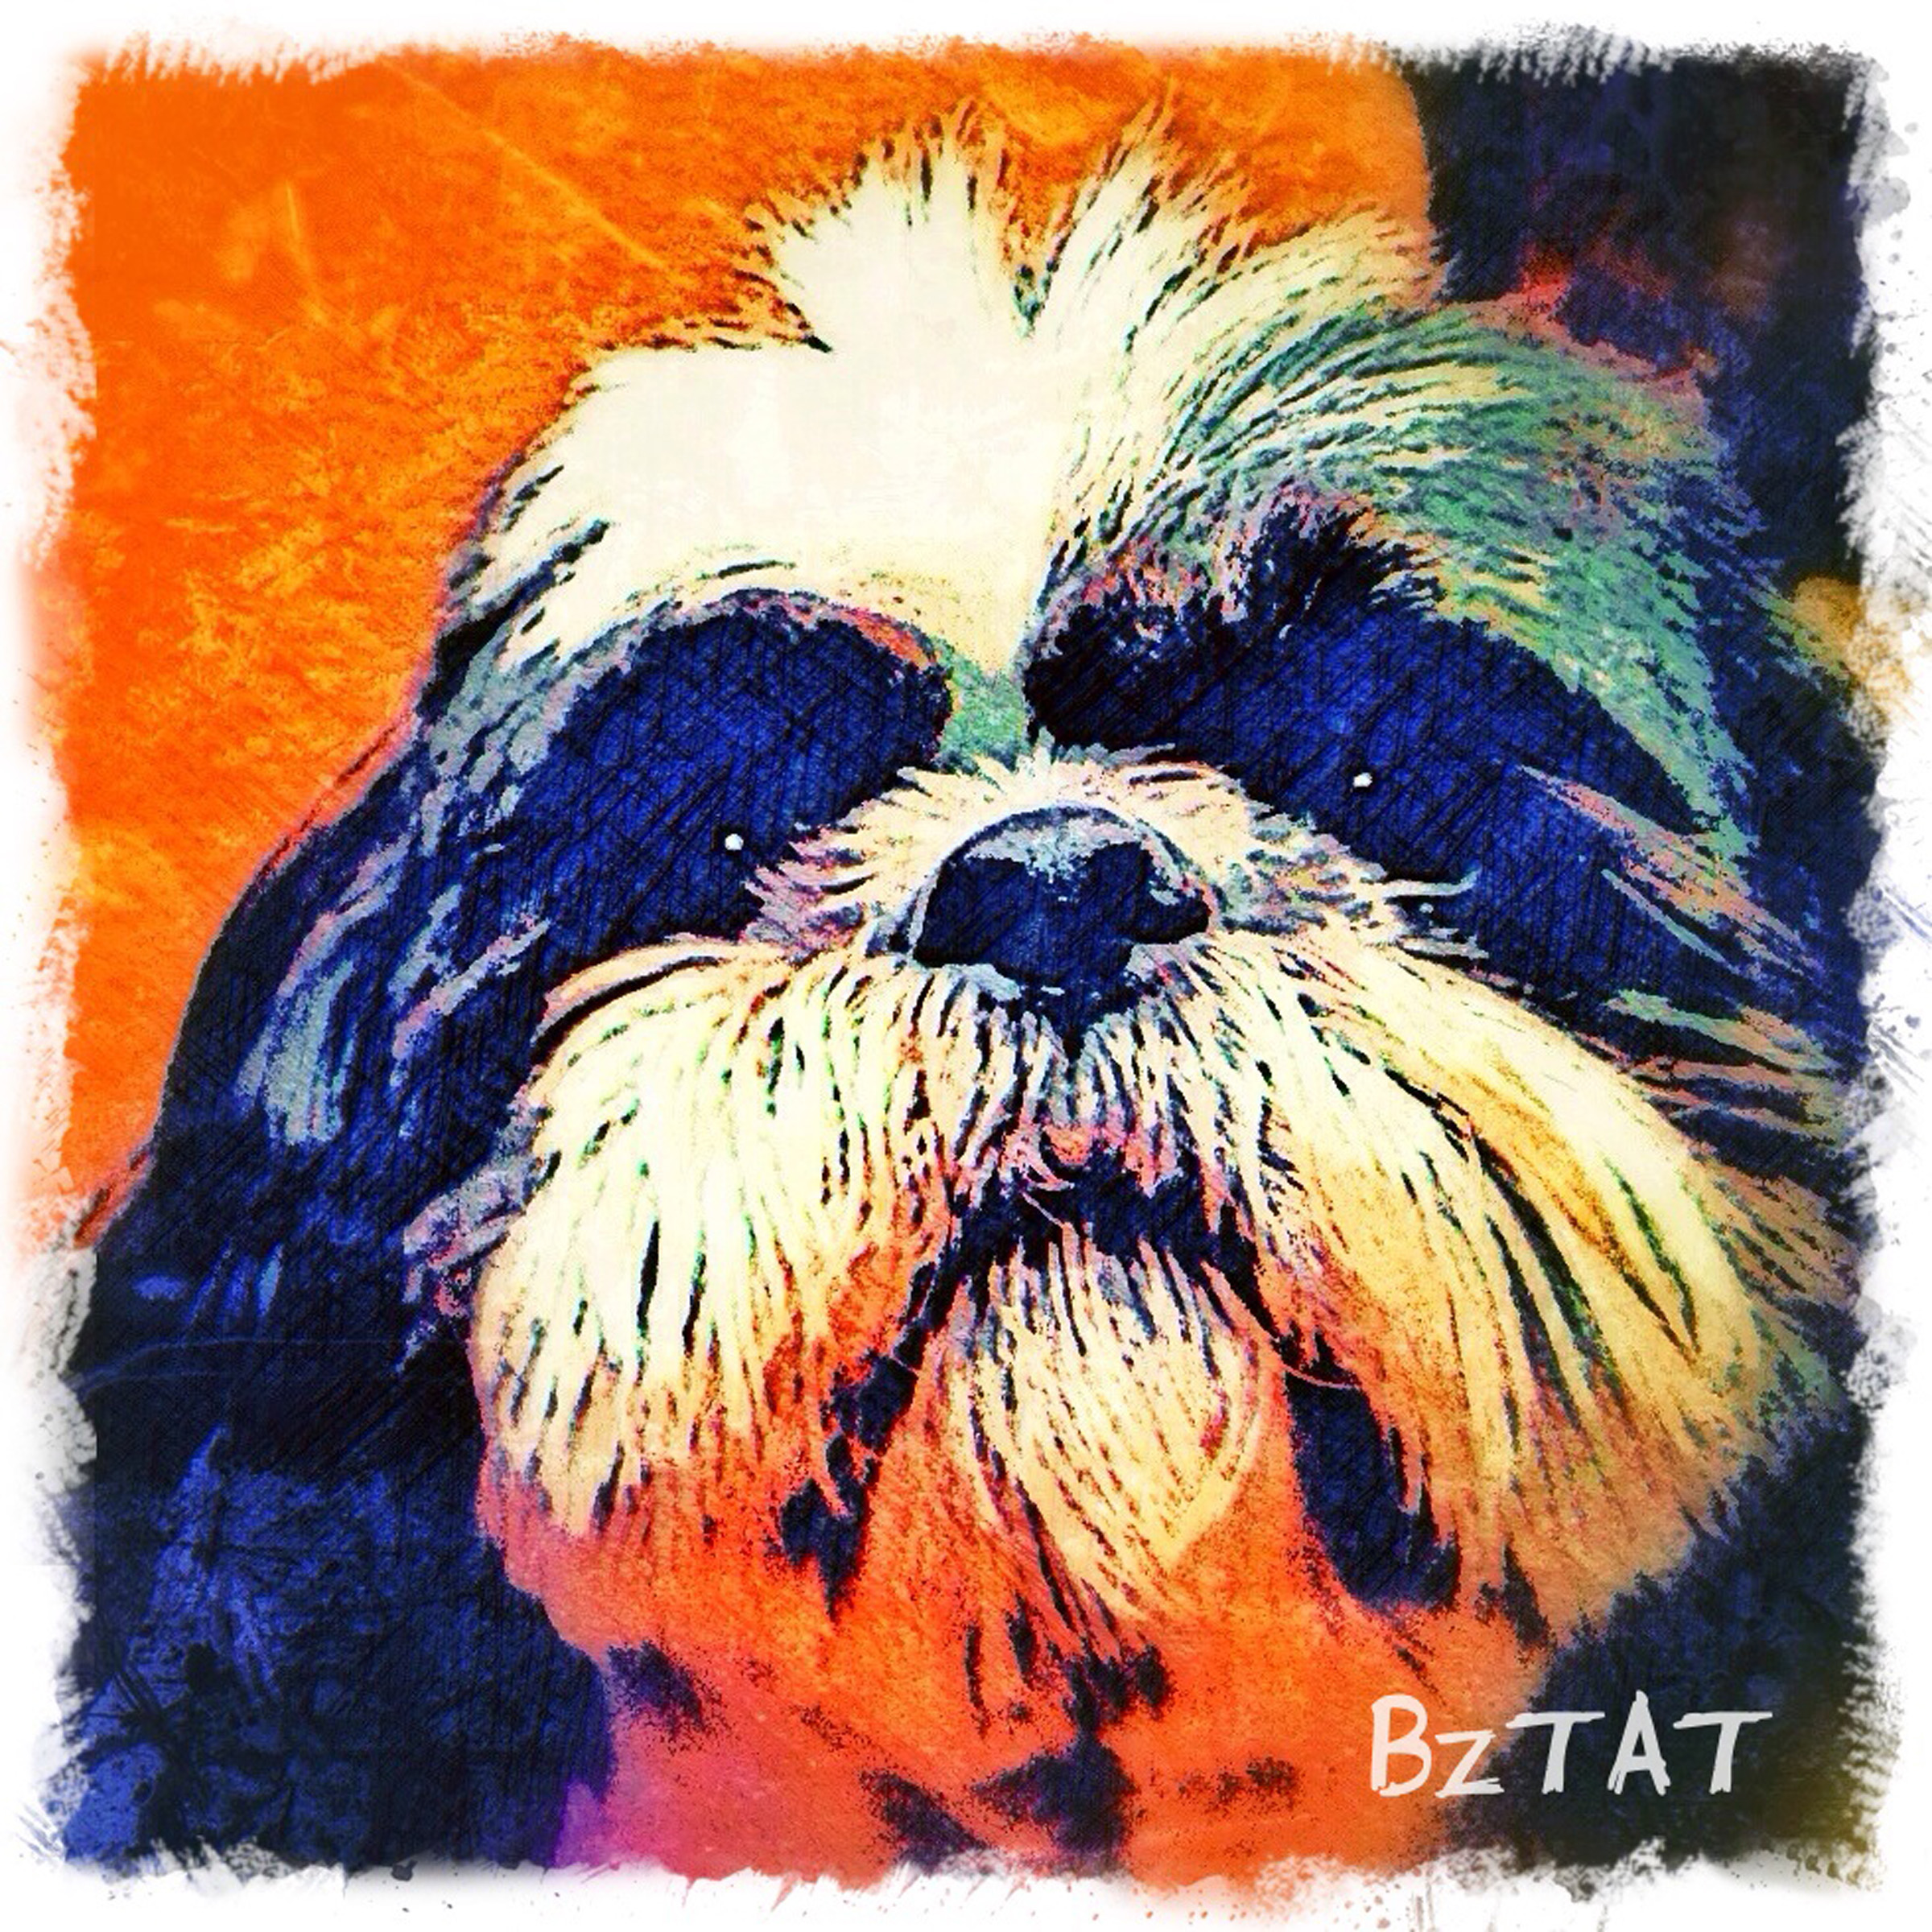 10-Digital-pet-portrait-dog-art-calendar-BZTAT